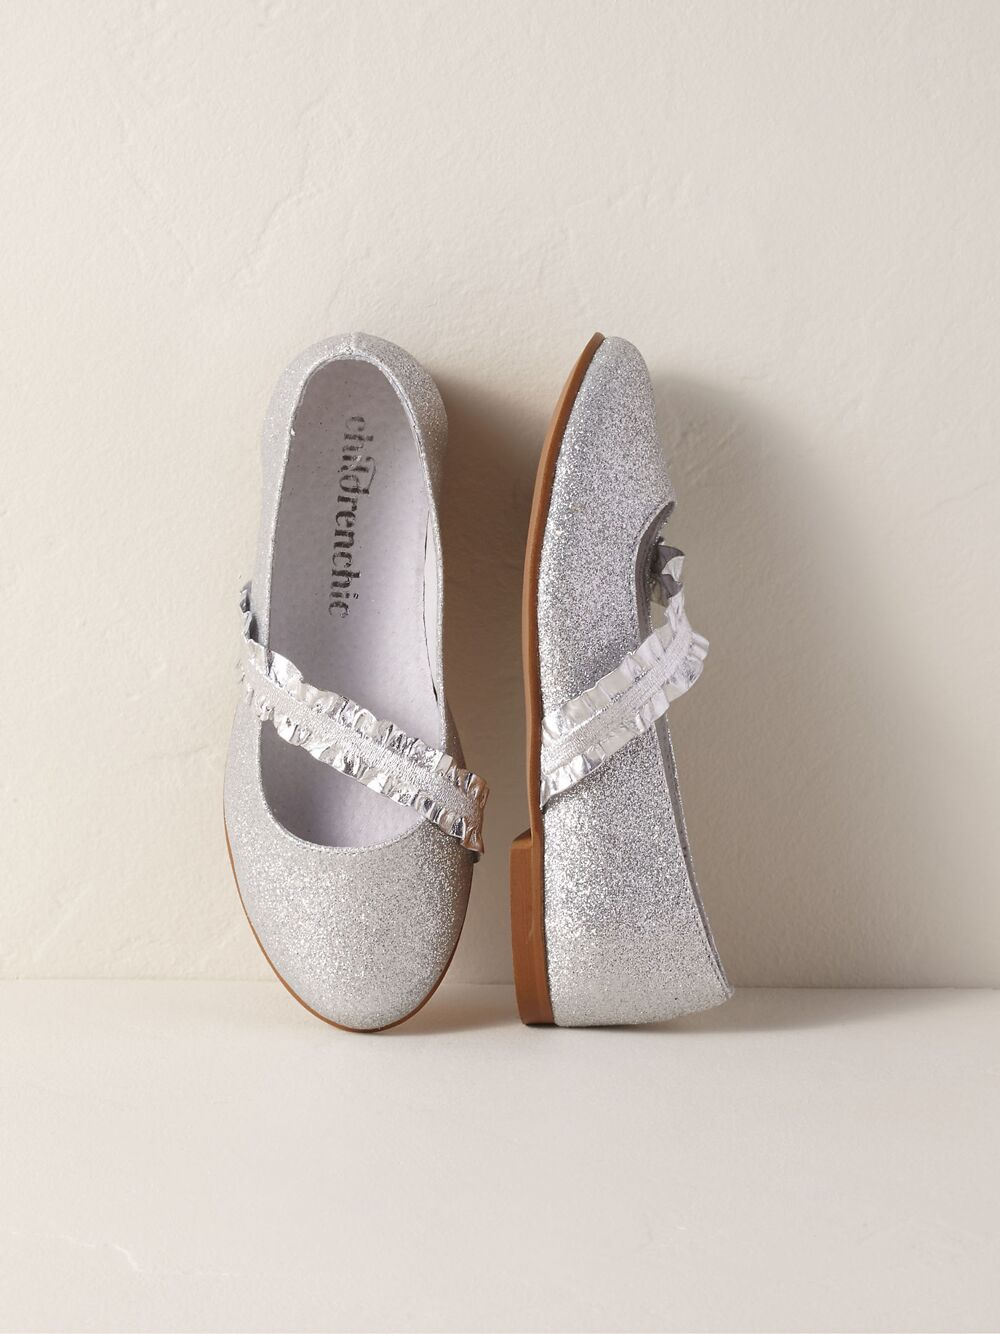 dbd683b4a4e1 30 Flower Girls Shoes That ll Put Extra Pep in Her Step